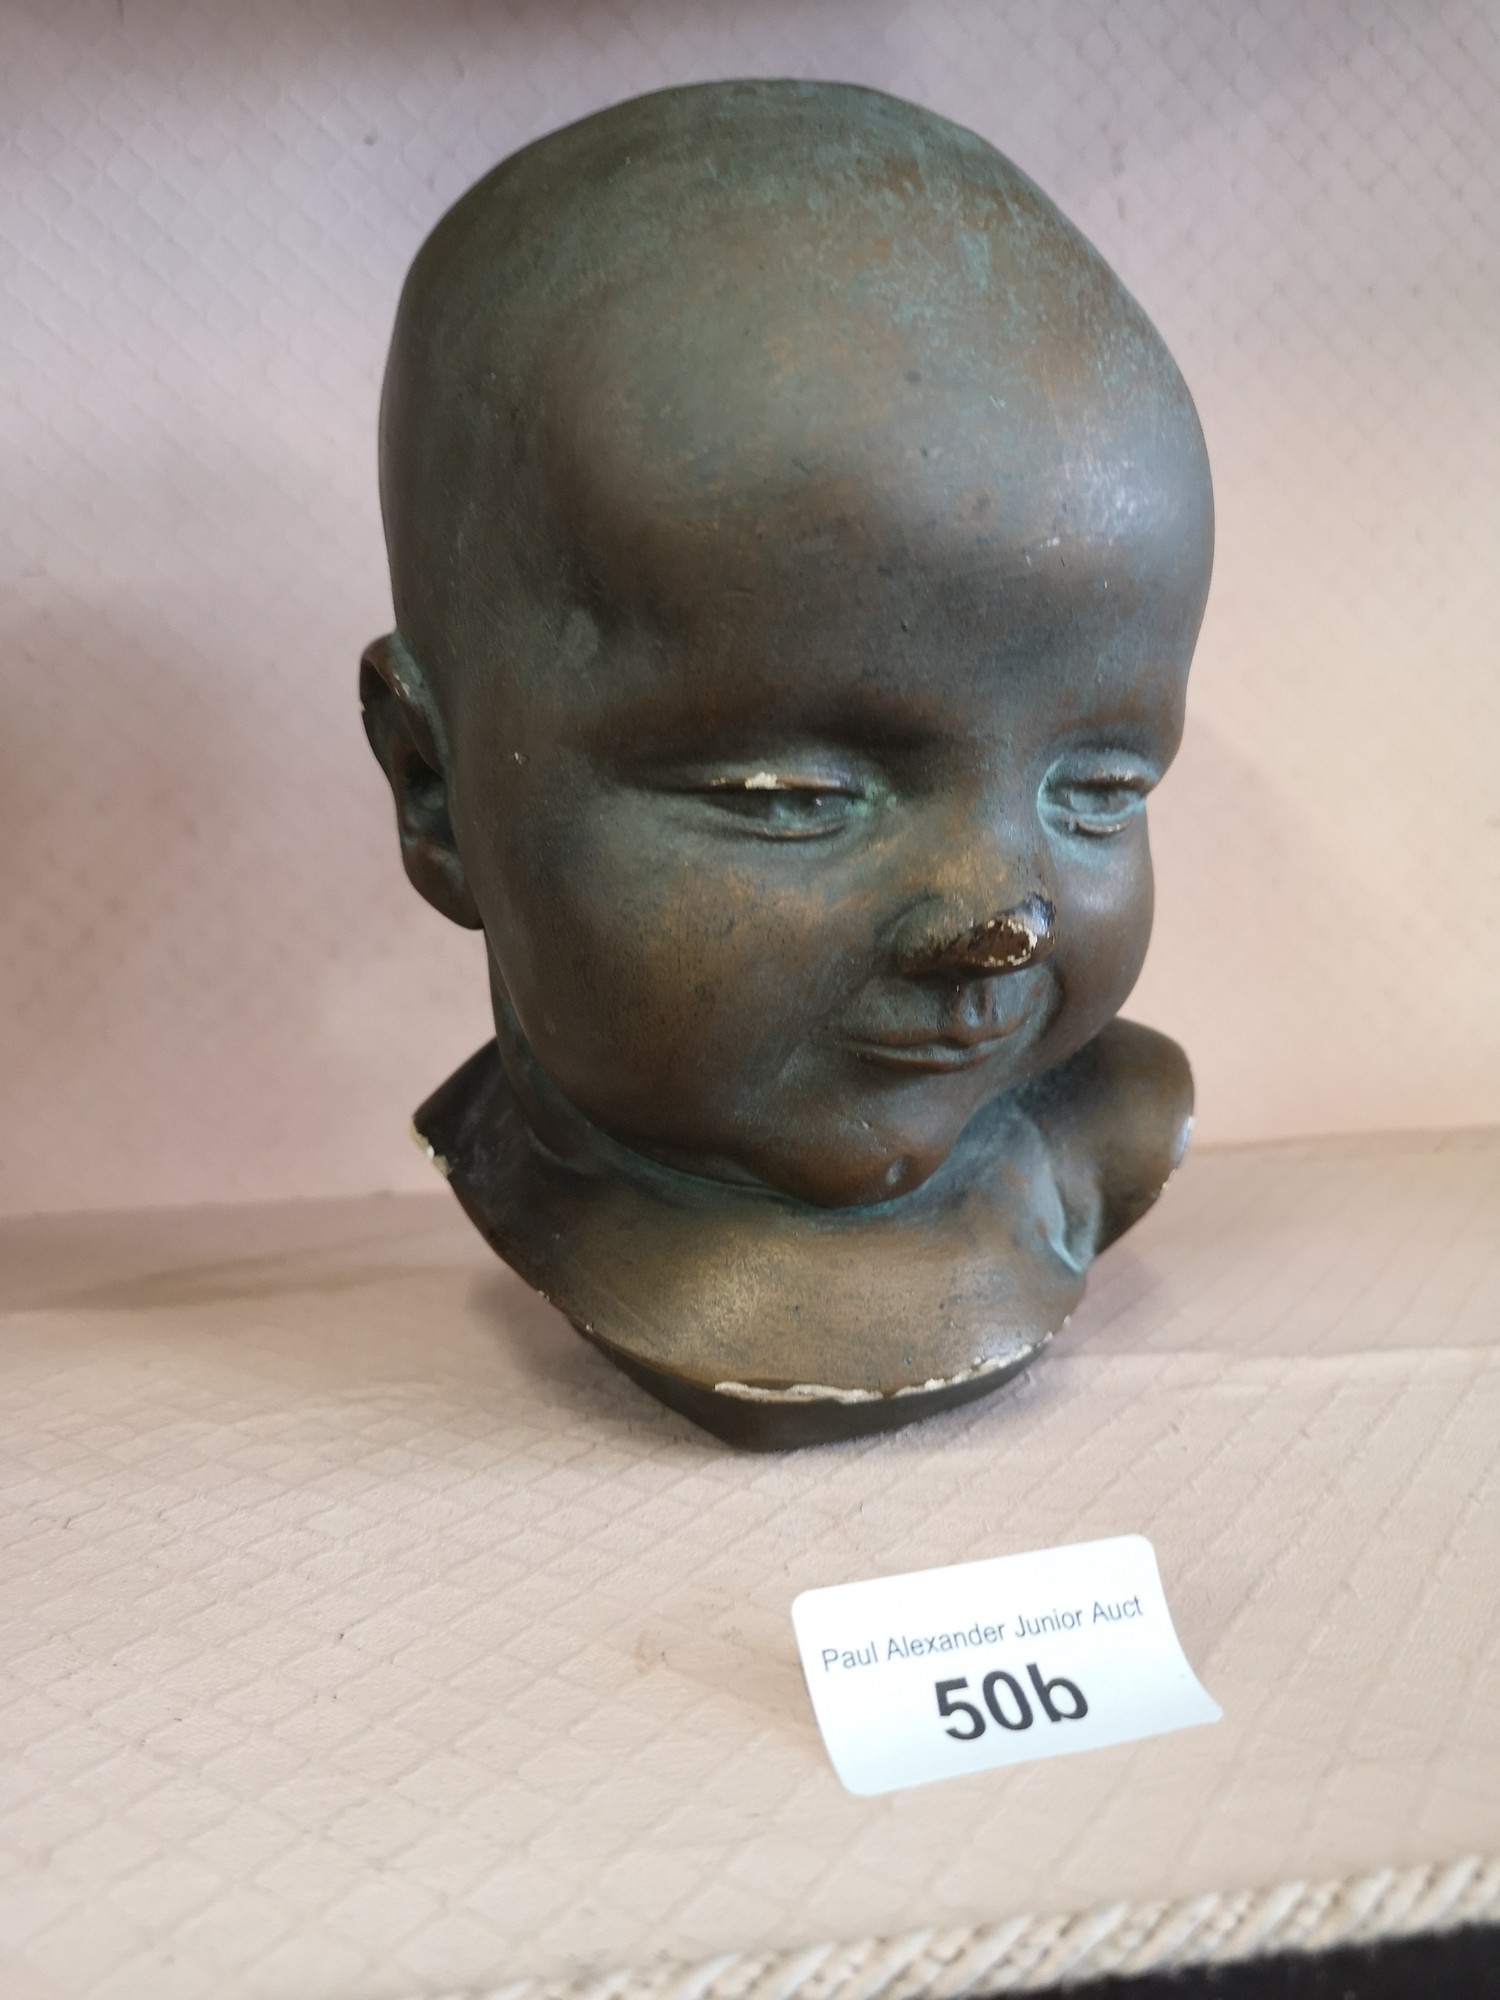 Eigendorn signed sculpture head with GFU intials. - Image 2 of 5